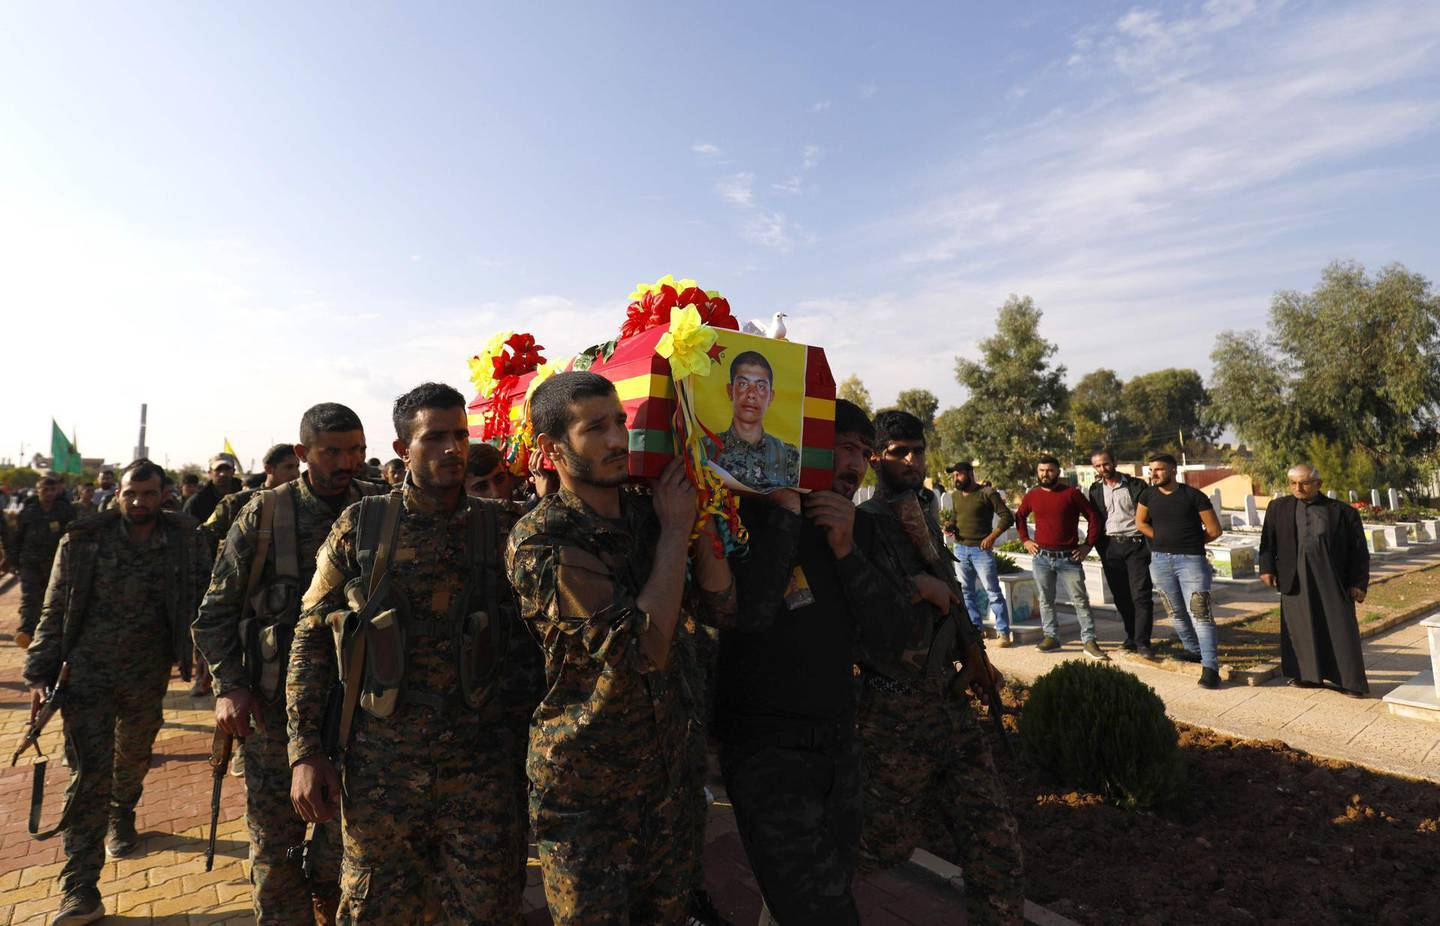 CORRECTION / Fighters from the Syrian Democratic Forces (SDF), carry the coffin of a fellow fighter  the funeral of a fellow fighter, killed during a military mission, in the Kurdish-controlled city of Qamishly in northeastern Syria, on November 11, 2018.   The Kurdish-led force SDF, joint Arab-Kurdish units backed by the US-led anti-jihadist coalition said today that it was resuming its offensive against the Islamic State (IS) group in eastern Syria. They had announced a suspension to their operation on October 31 after Turkey shelled Kurdish militia posts in northern Syria.  / AFP / Delil SOULEIMAN